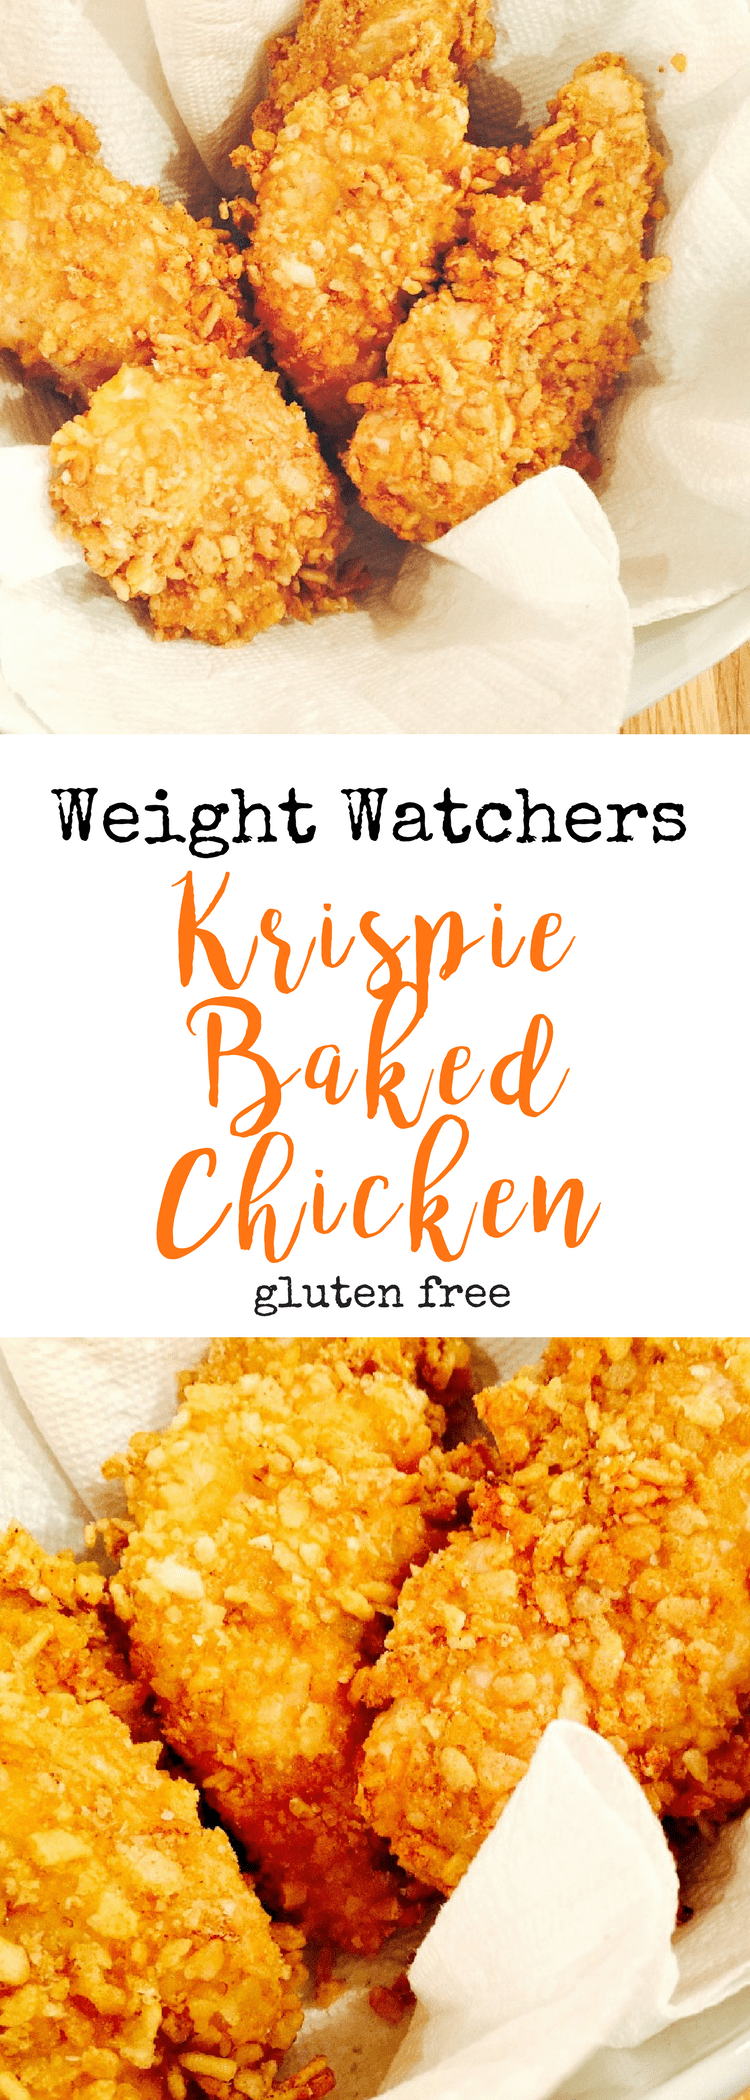 Weight Watchers Krispie Baked Chicken | Confessions of a Fit Foodie